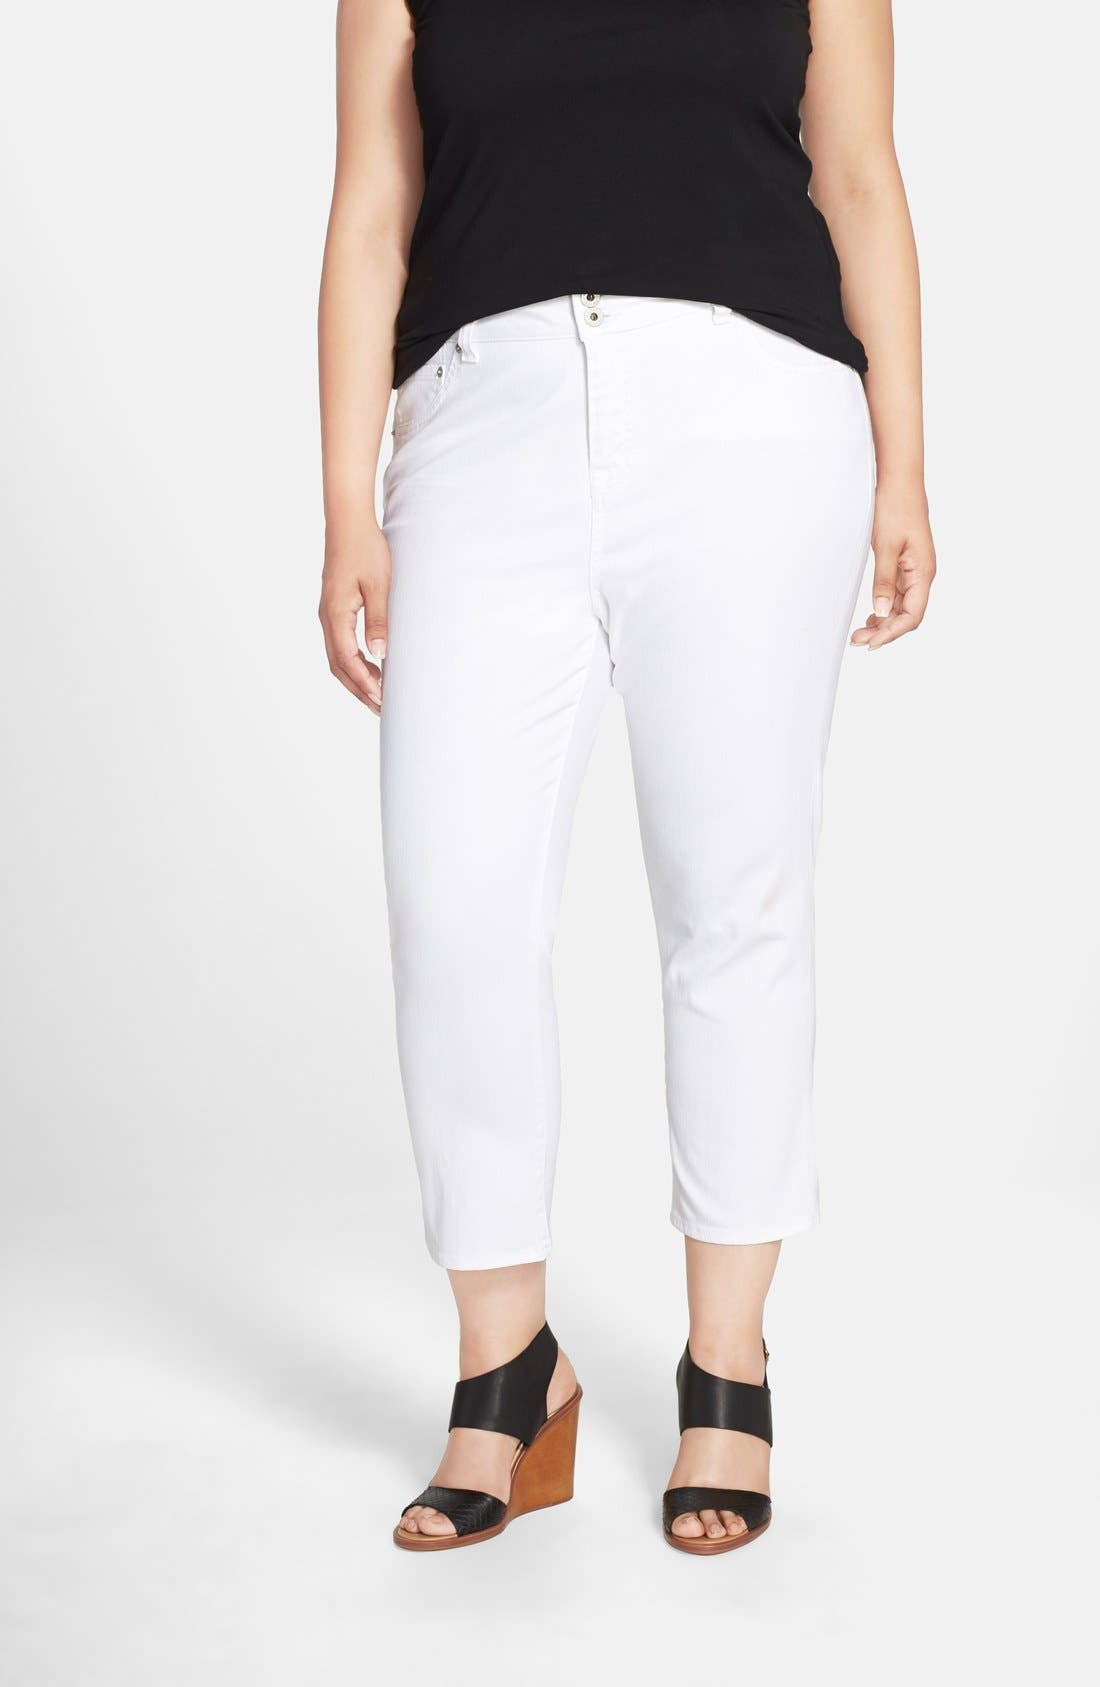 LUCKY BRAND 'Emma' Stretch Crop Jeans, Main, color, 110